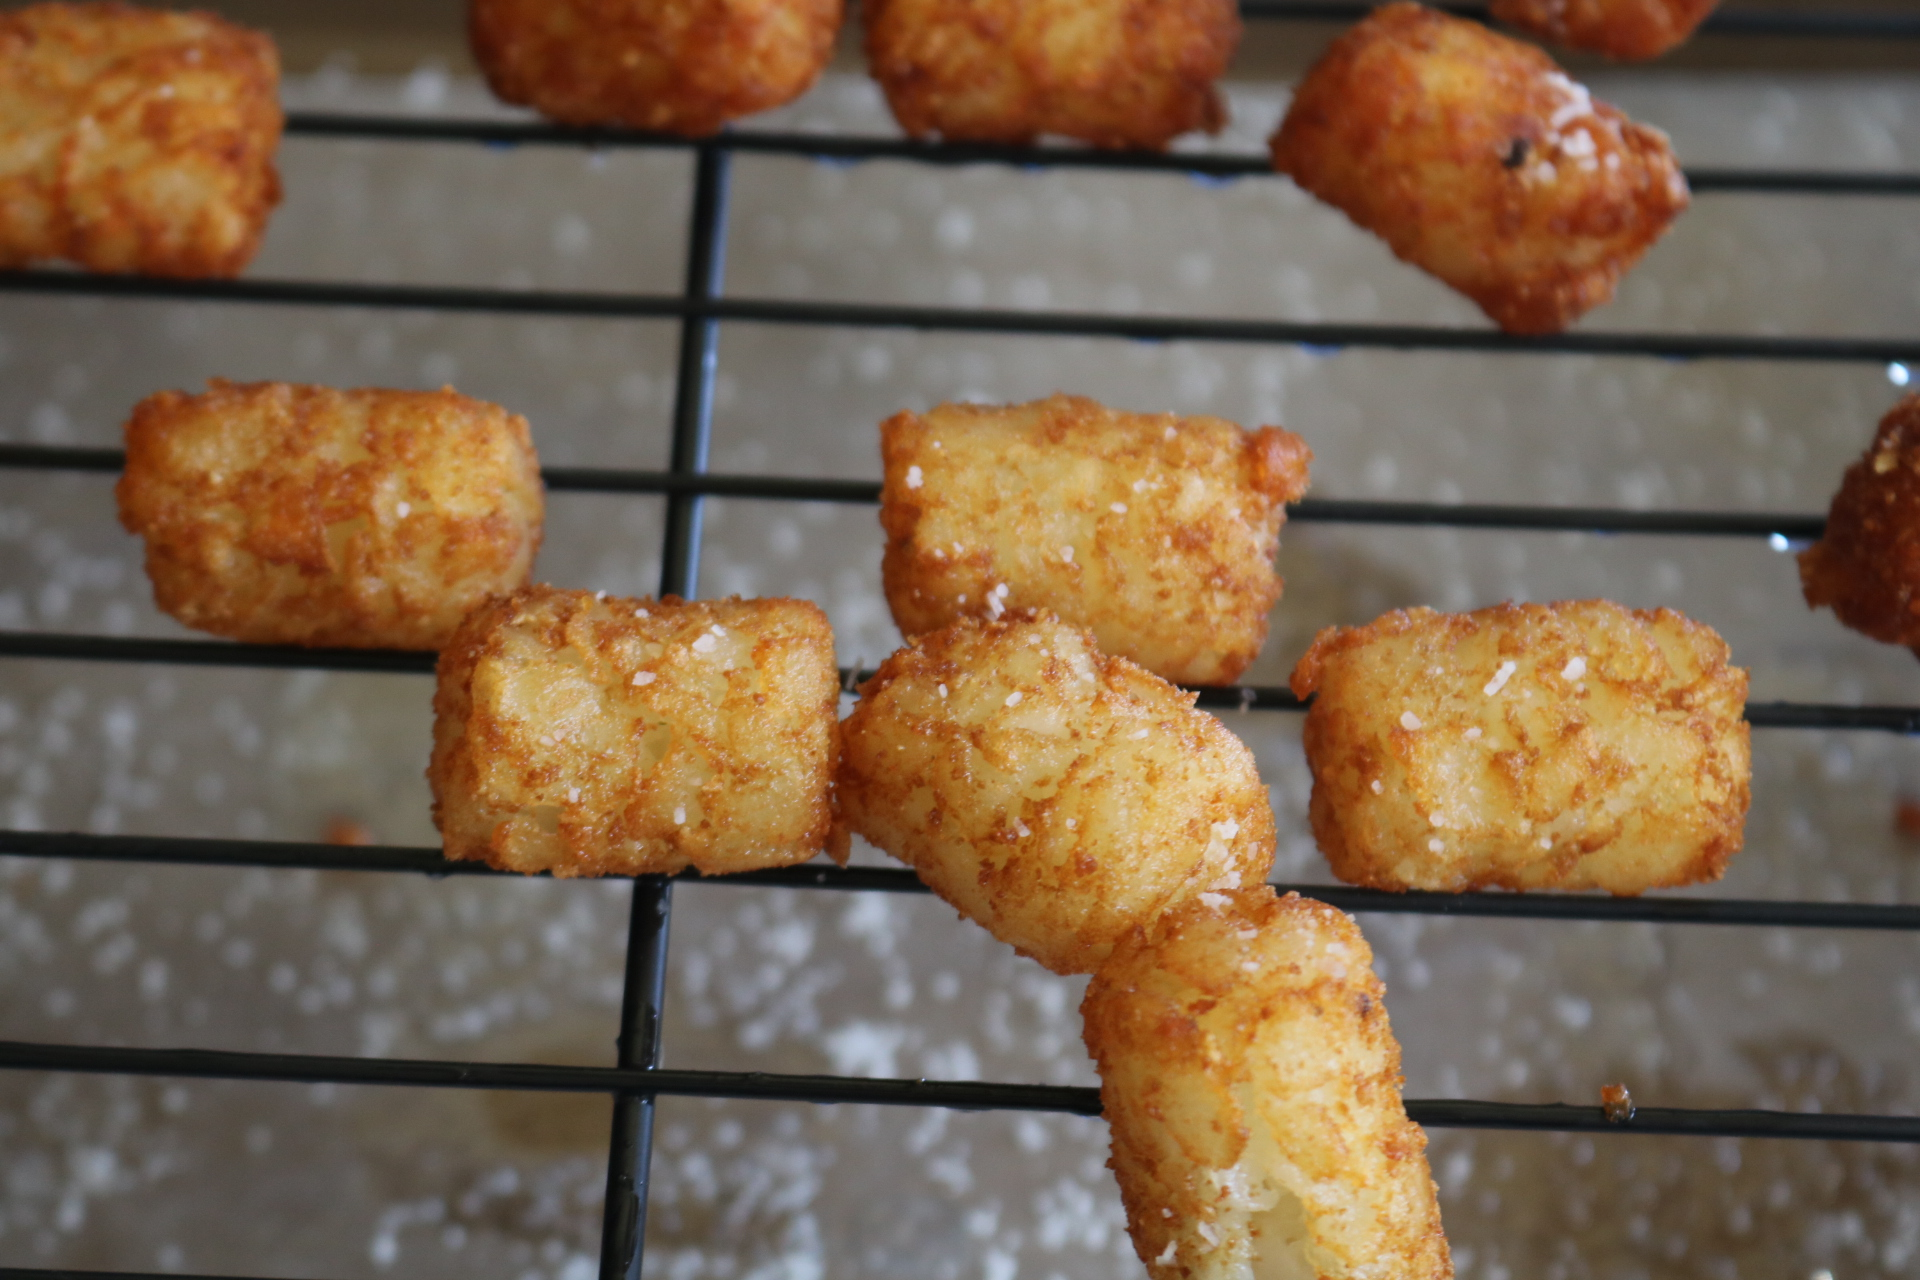 frying-foods-on-the-stove.jpg